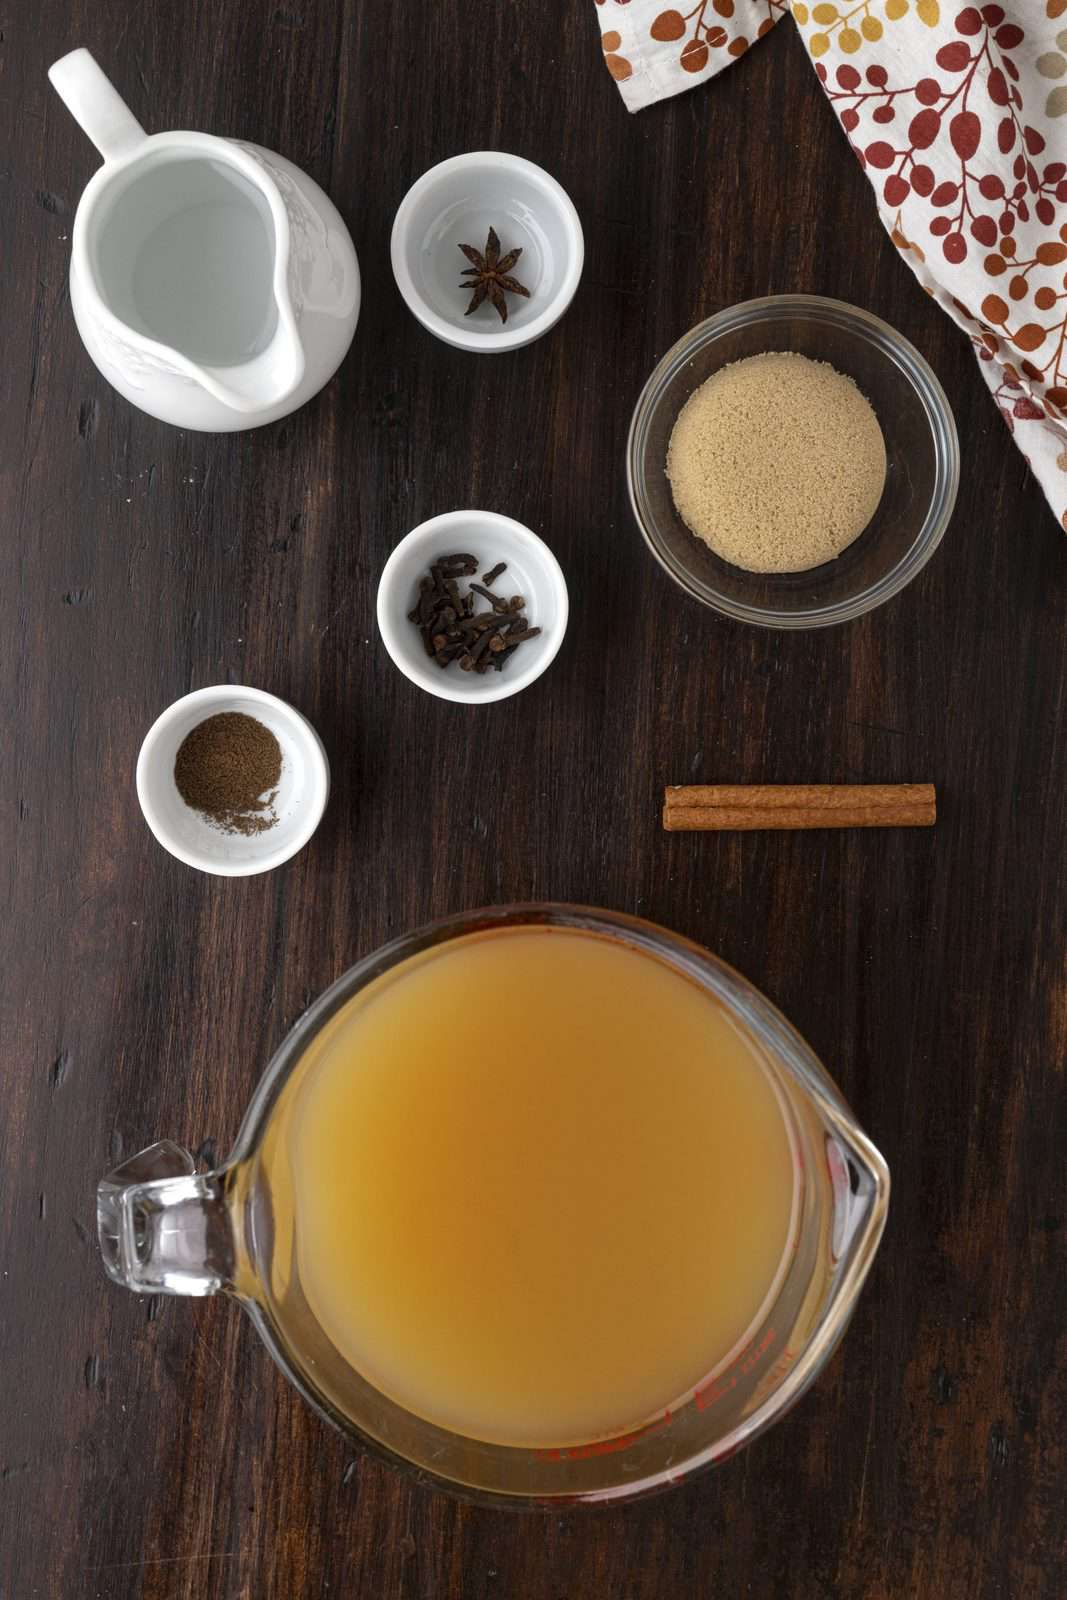 Ingredients needed: apple cider, brown sugar, cinnamon stick, star anise, whole cloves, allspice and vodka.